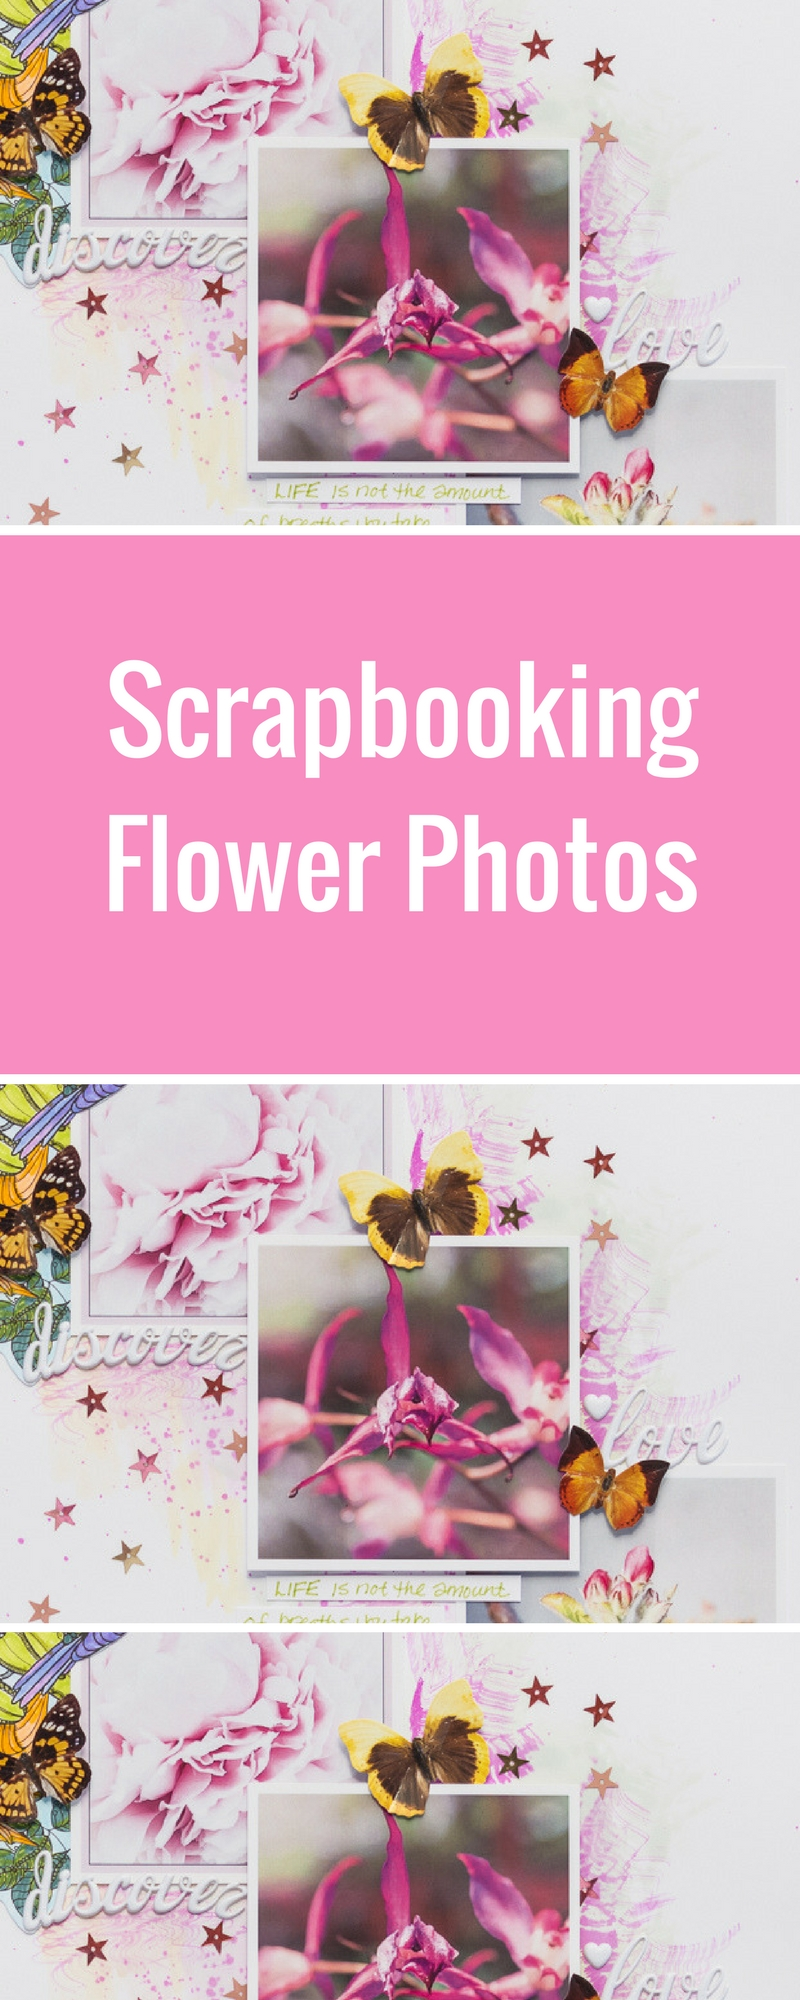 Tombow Scrapbooking Products   Projects Designed by Kim Gowdy   Creative Scrapbooker Magazine #coloring #scrapbooking